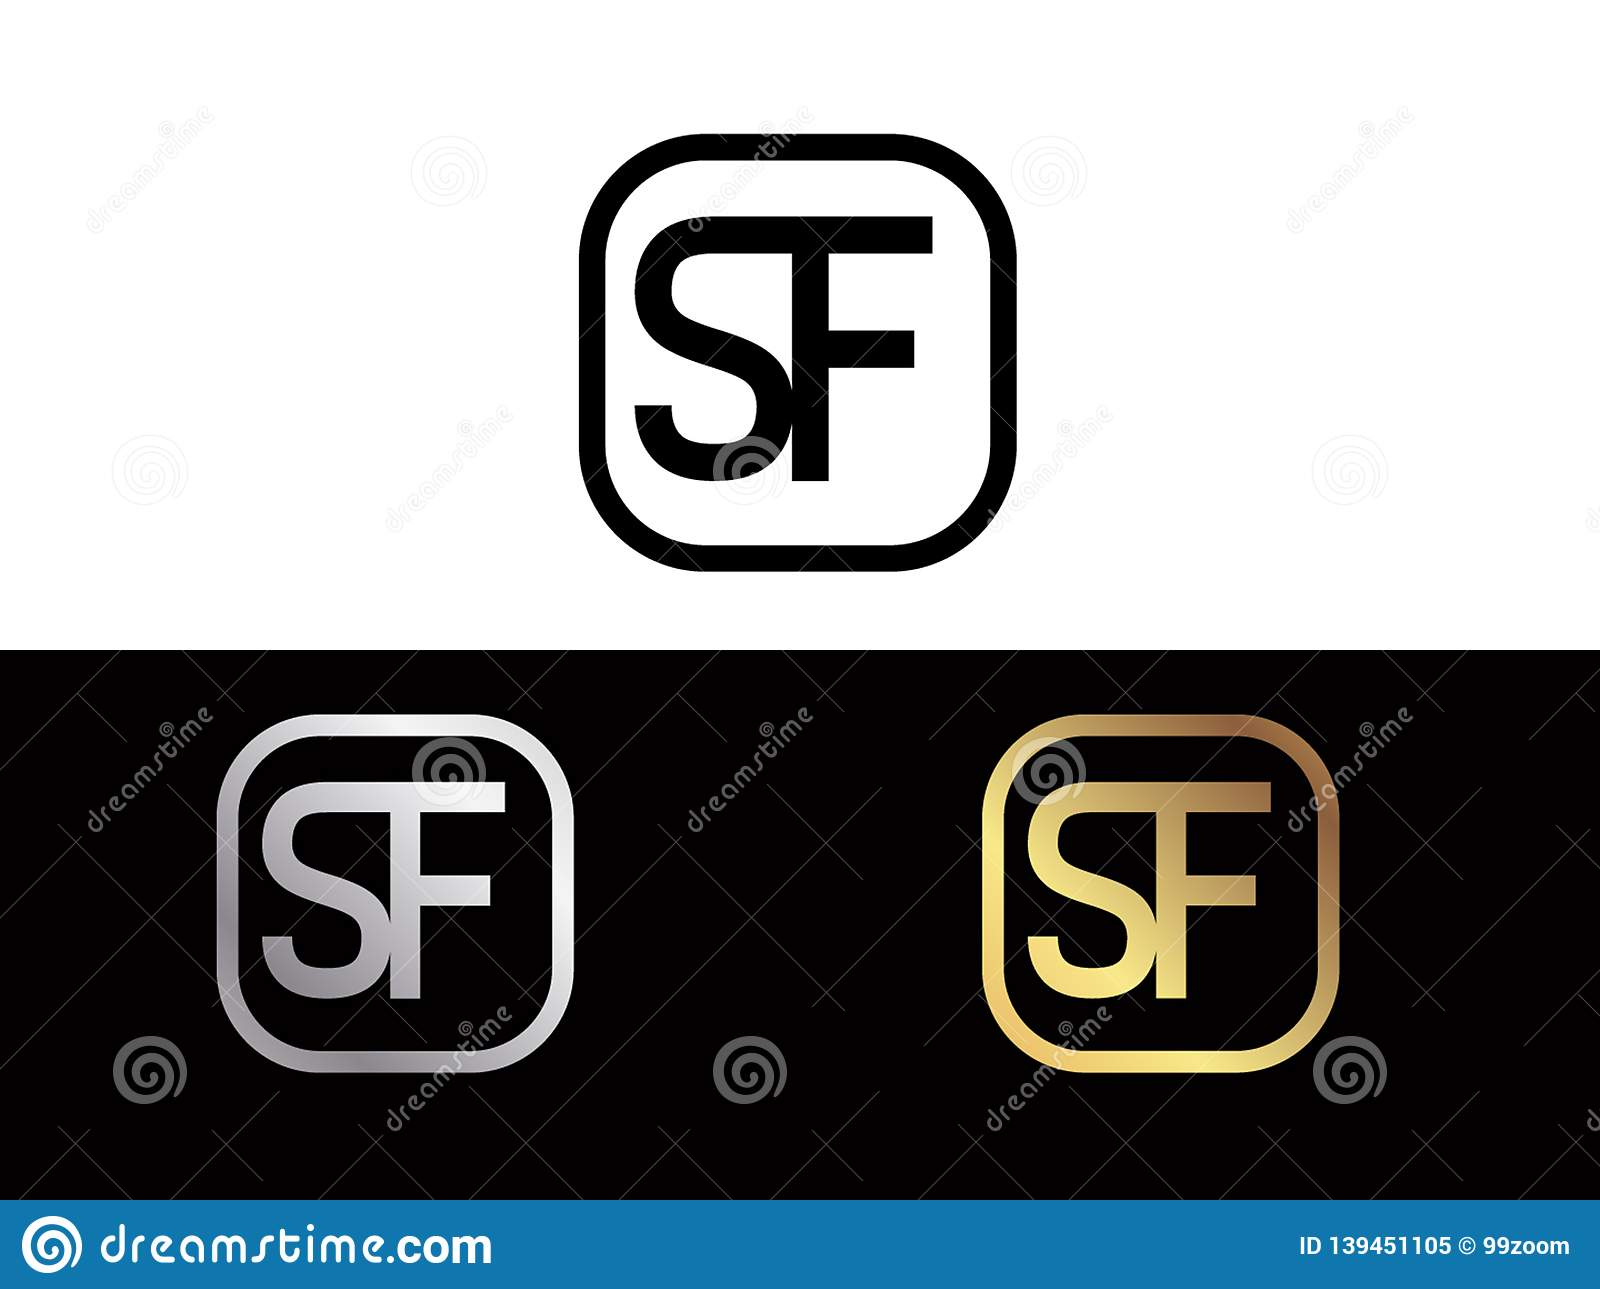 SF Initial box shape Gold color later Logo Design